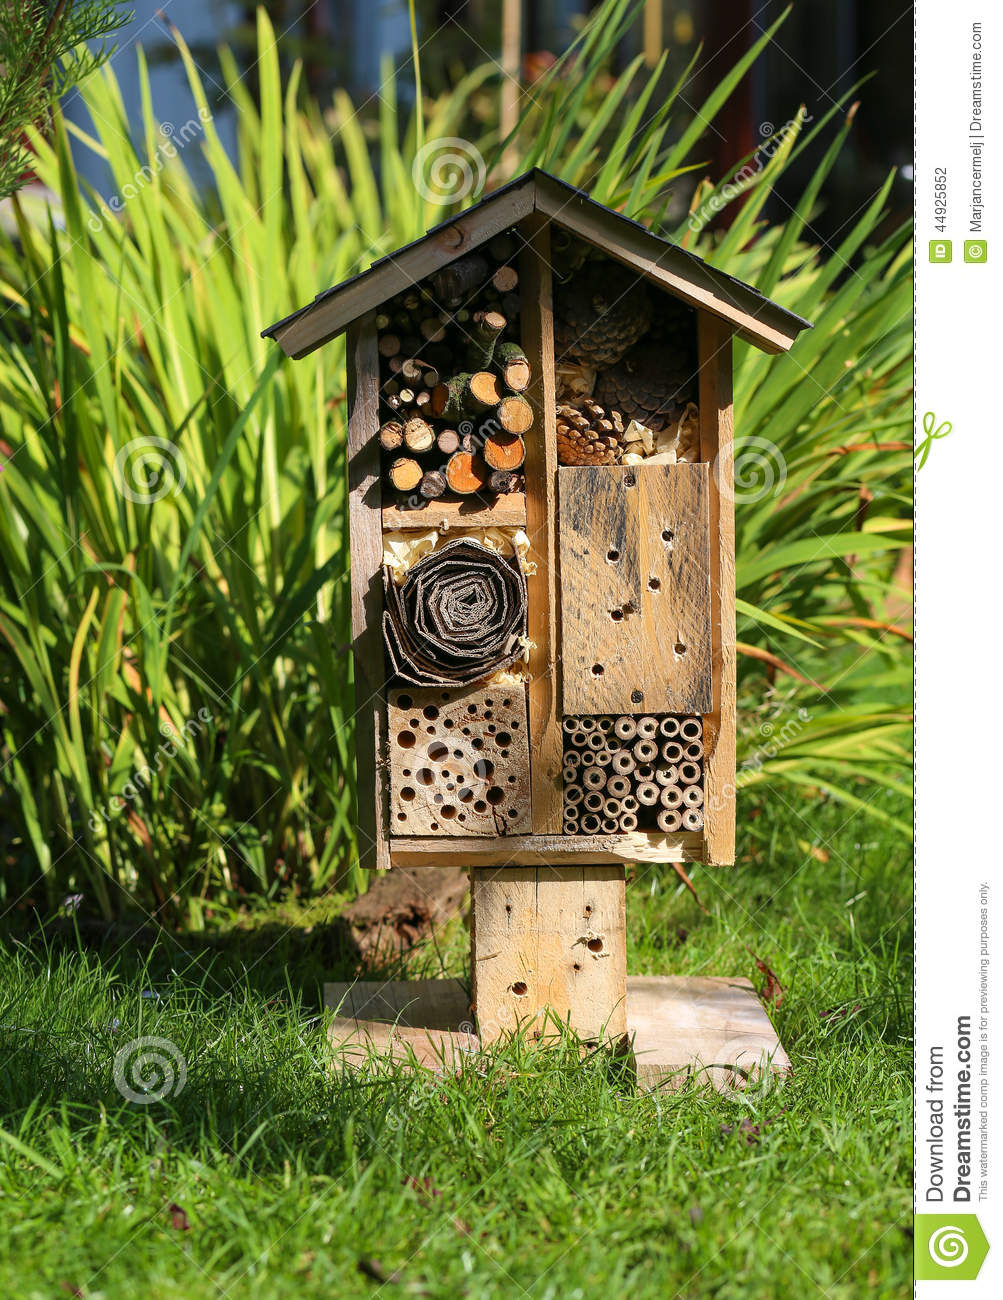 Wooden Insect House Garden Decorative Bug Hotel And